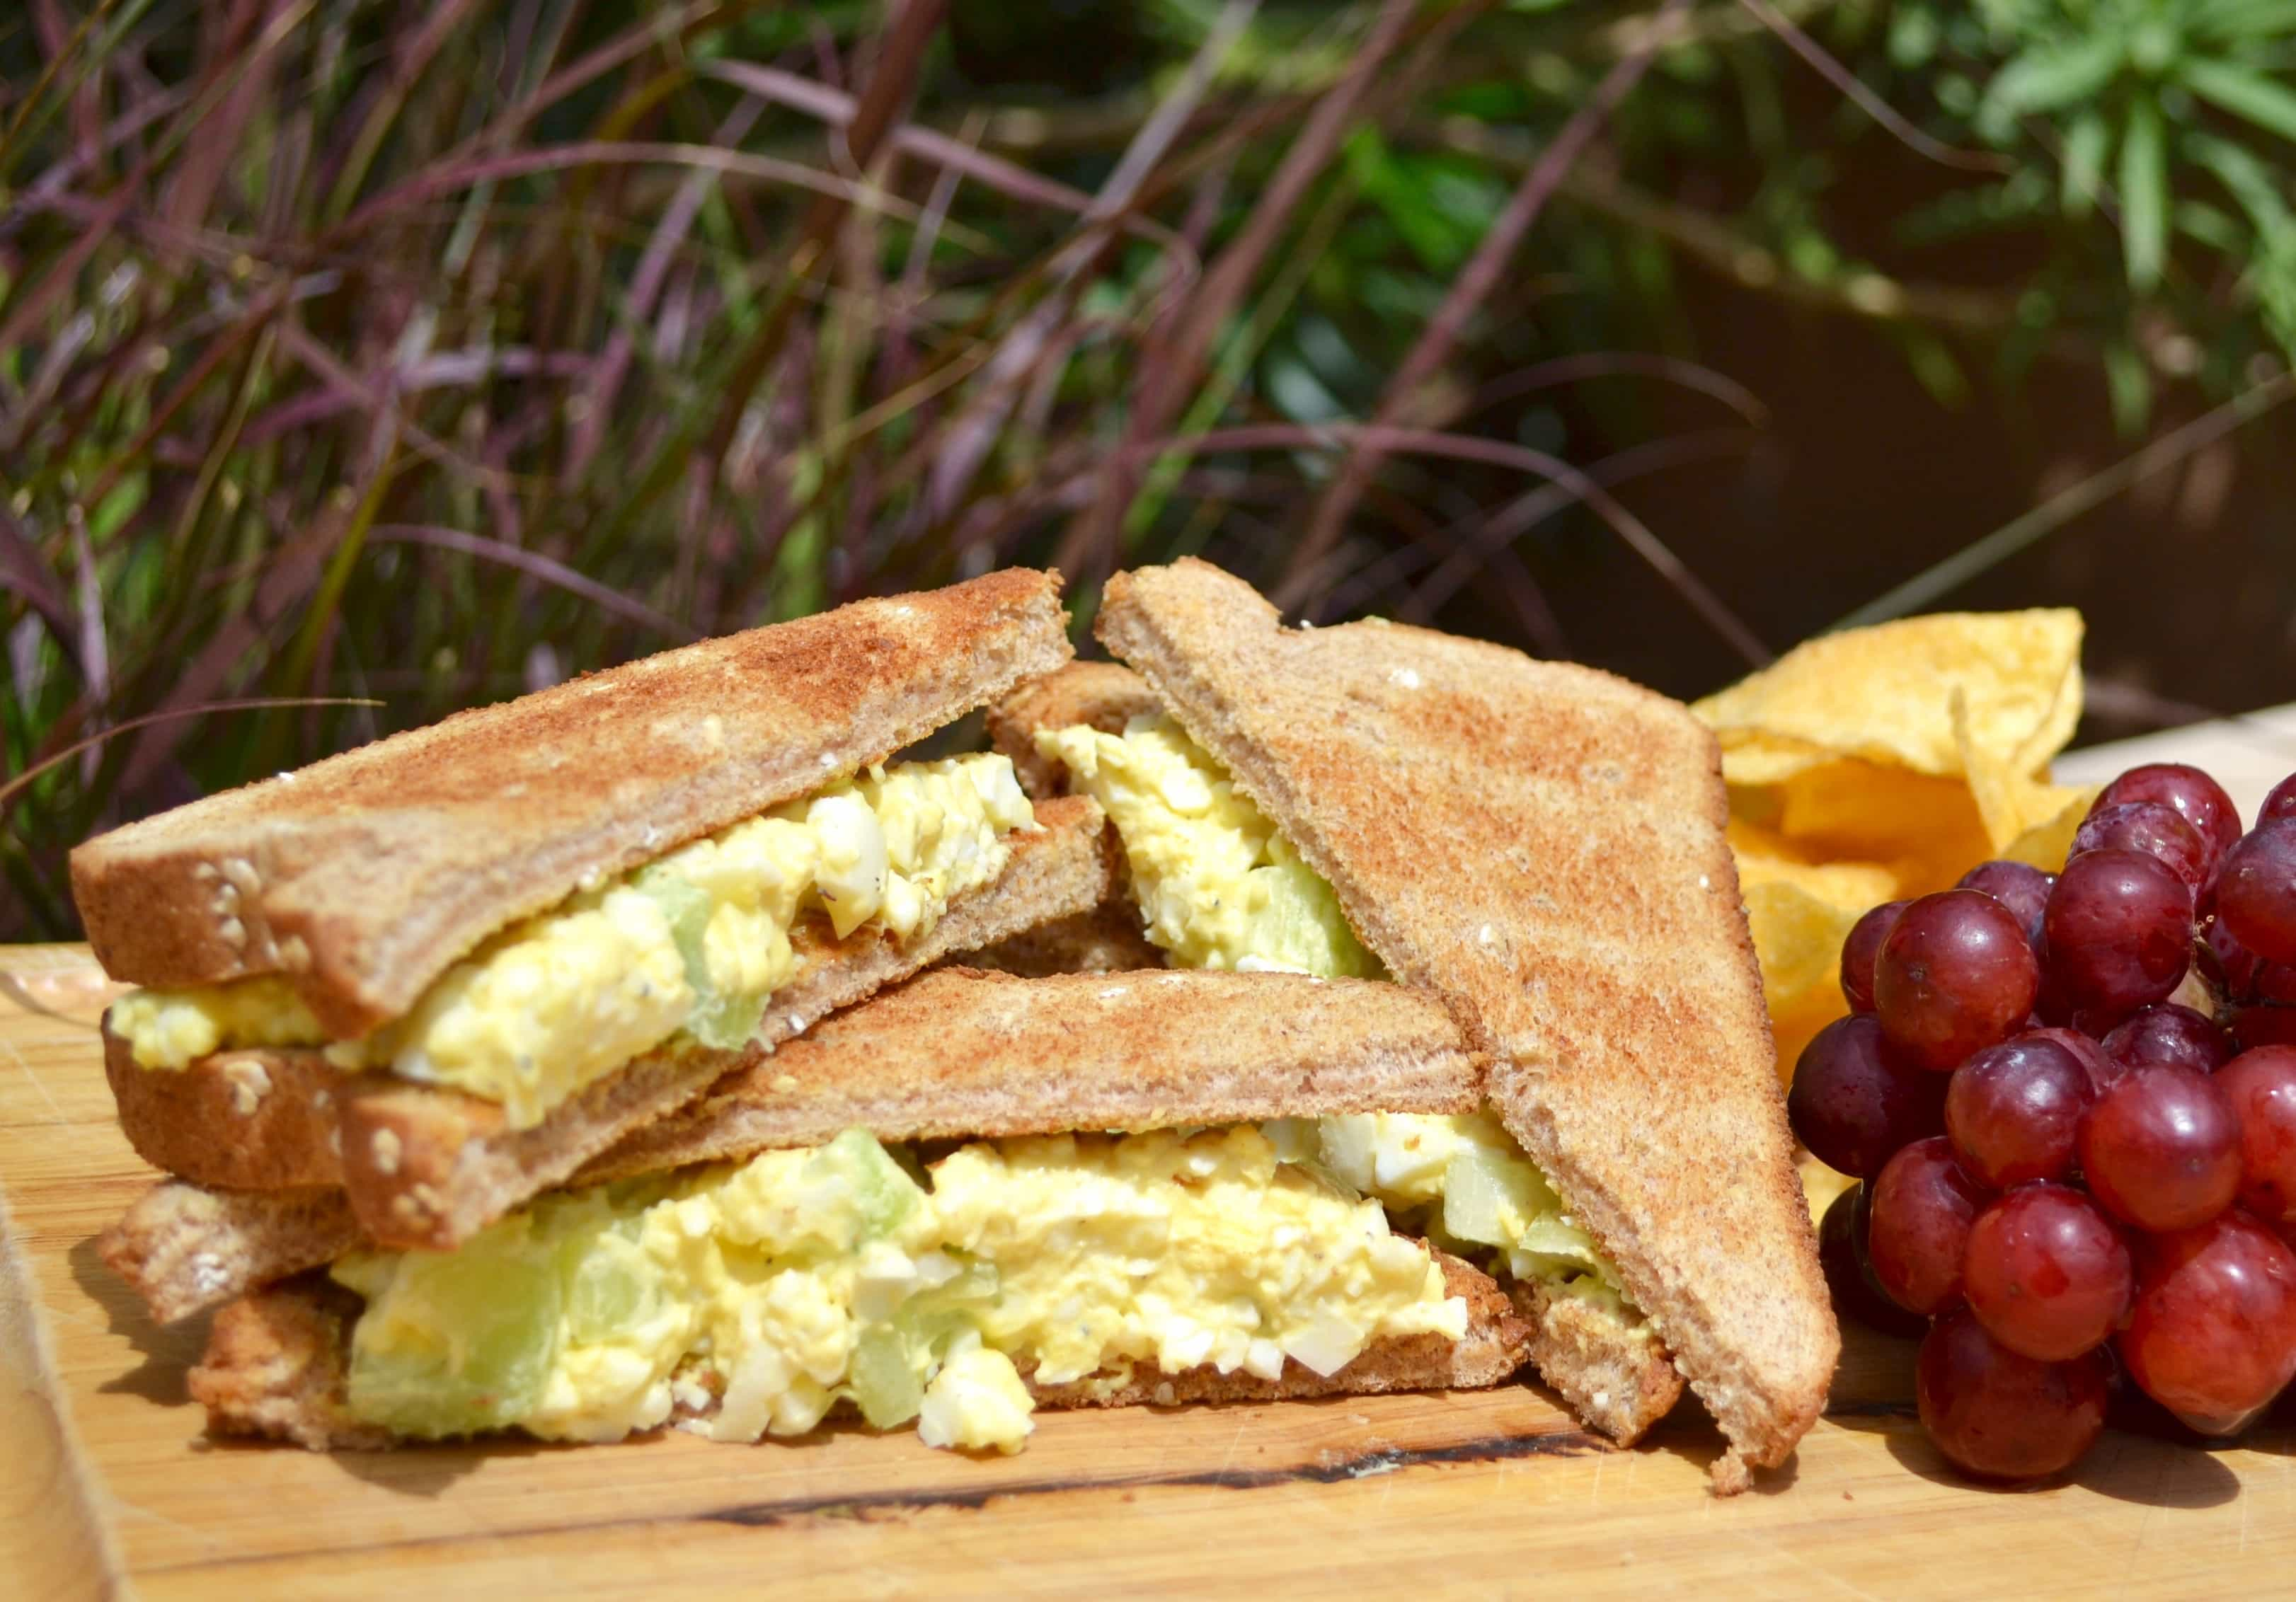 Camping Food Ideas Egg Salad Sandwich Delish The Spicy Apron